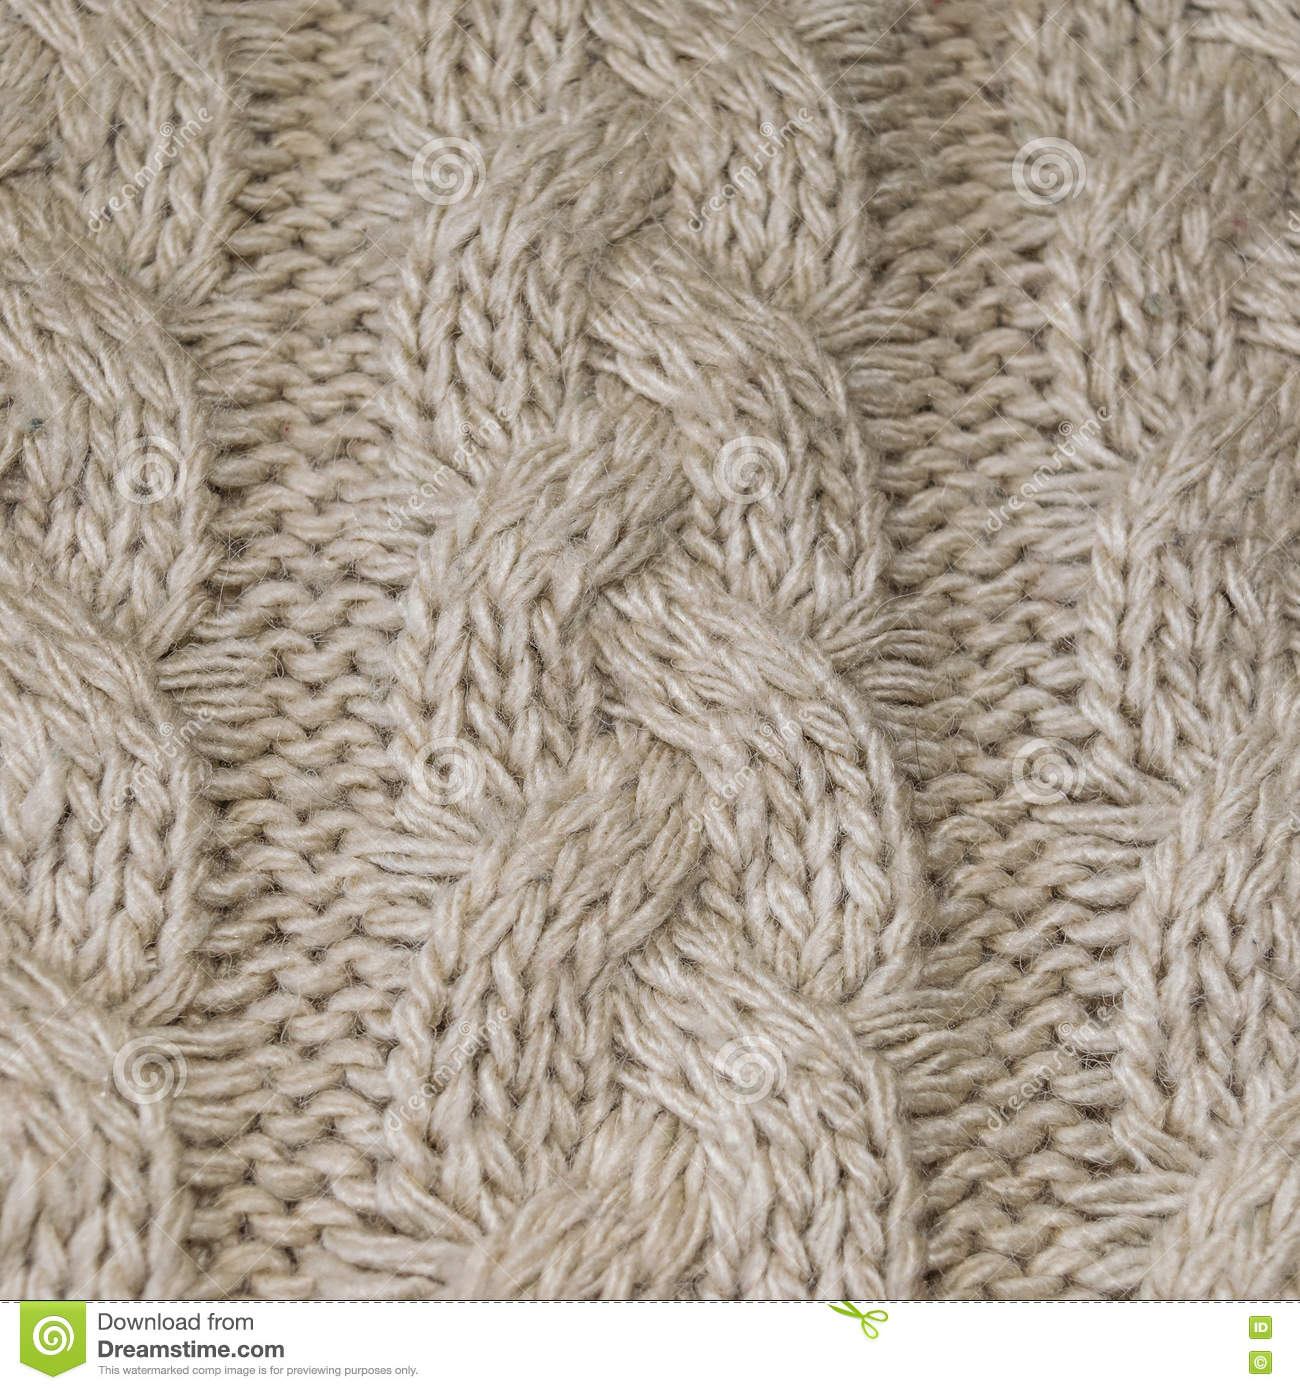 Texture Artificial Wool With Knitting Patterns. Stock Photo - Image ...